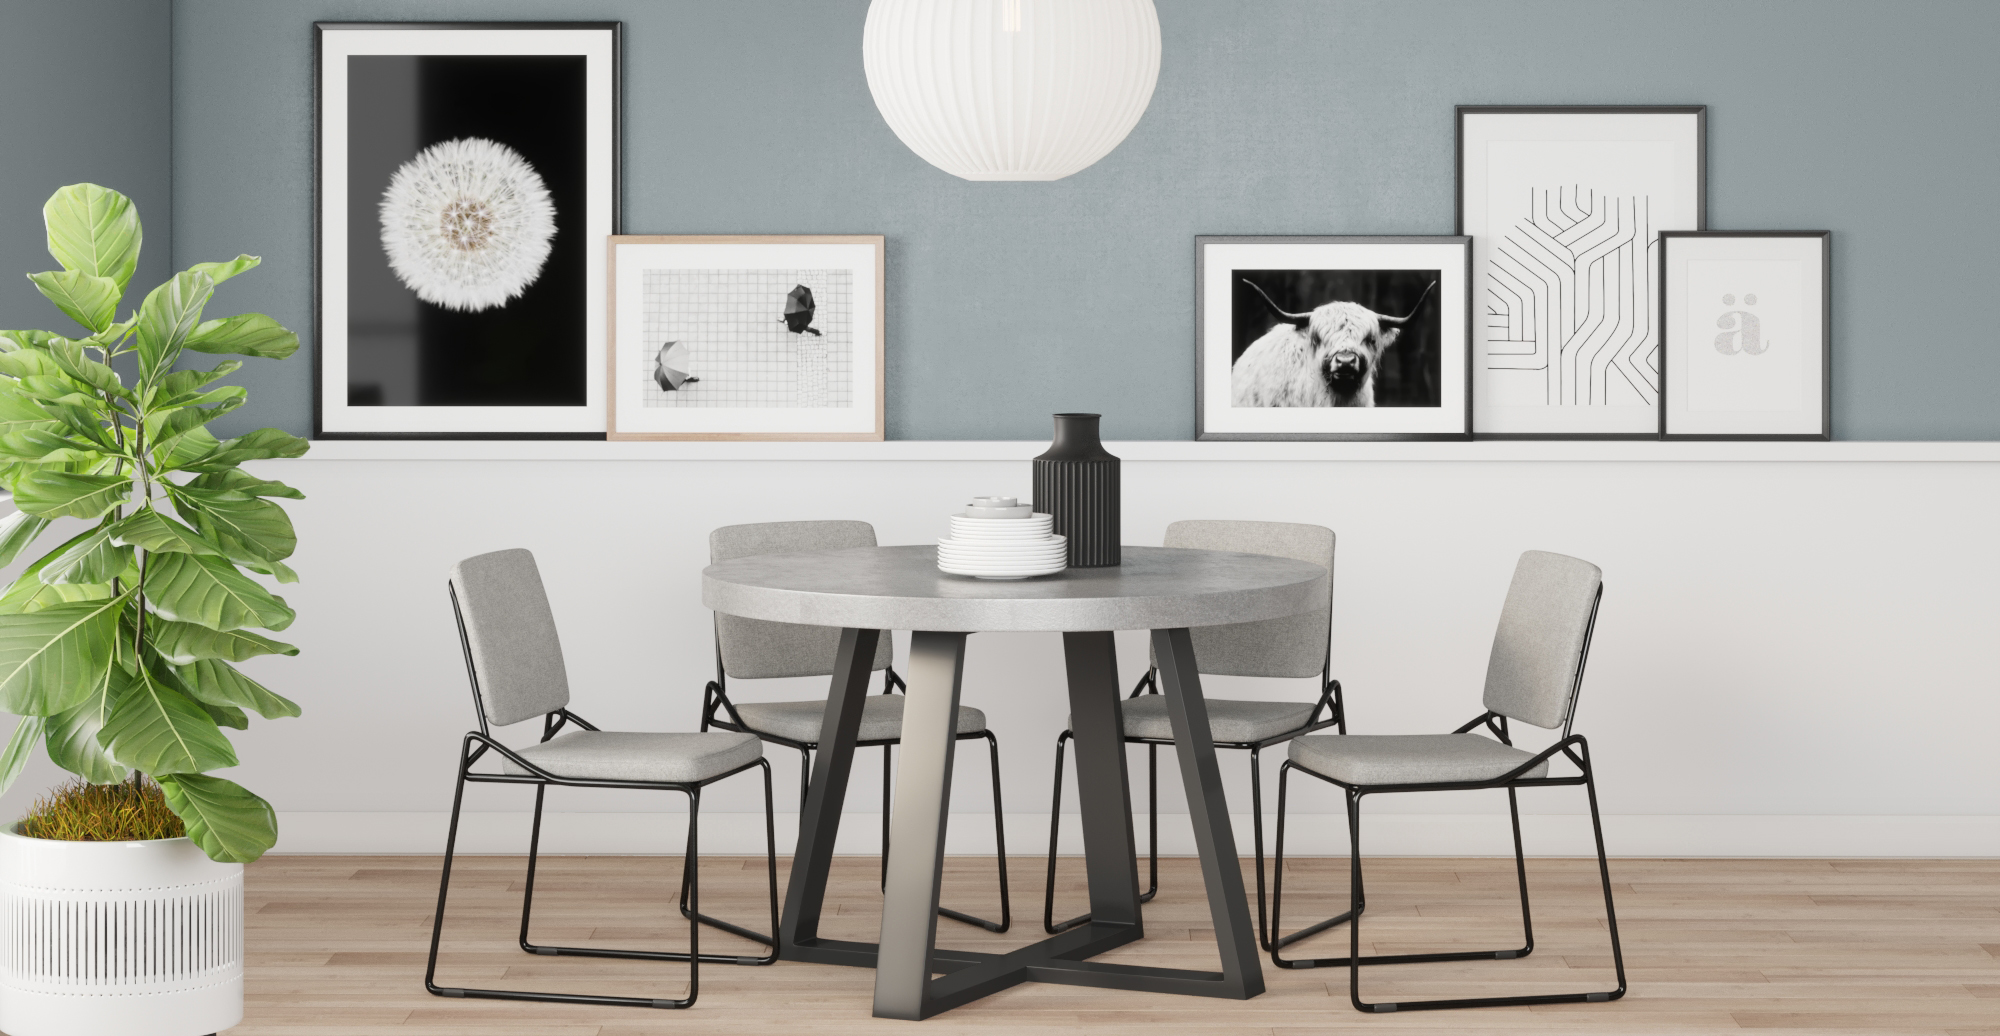 Brosa Glasser Set of 2 Dining Chairs styled in modern contemporary dining room